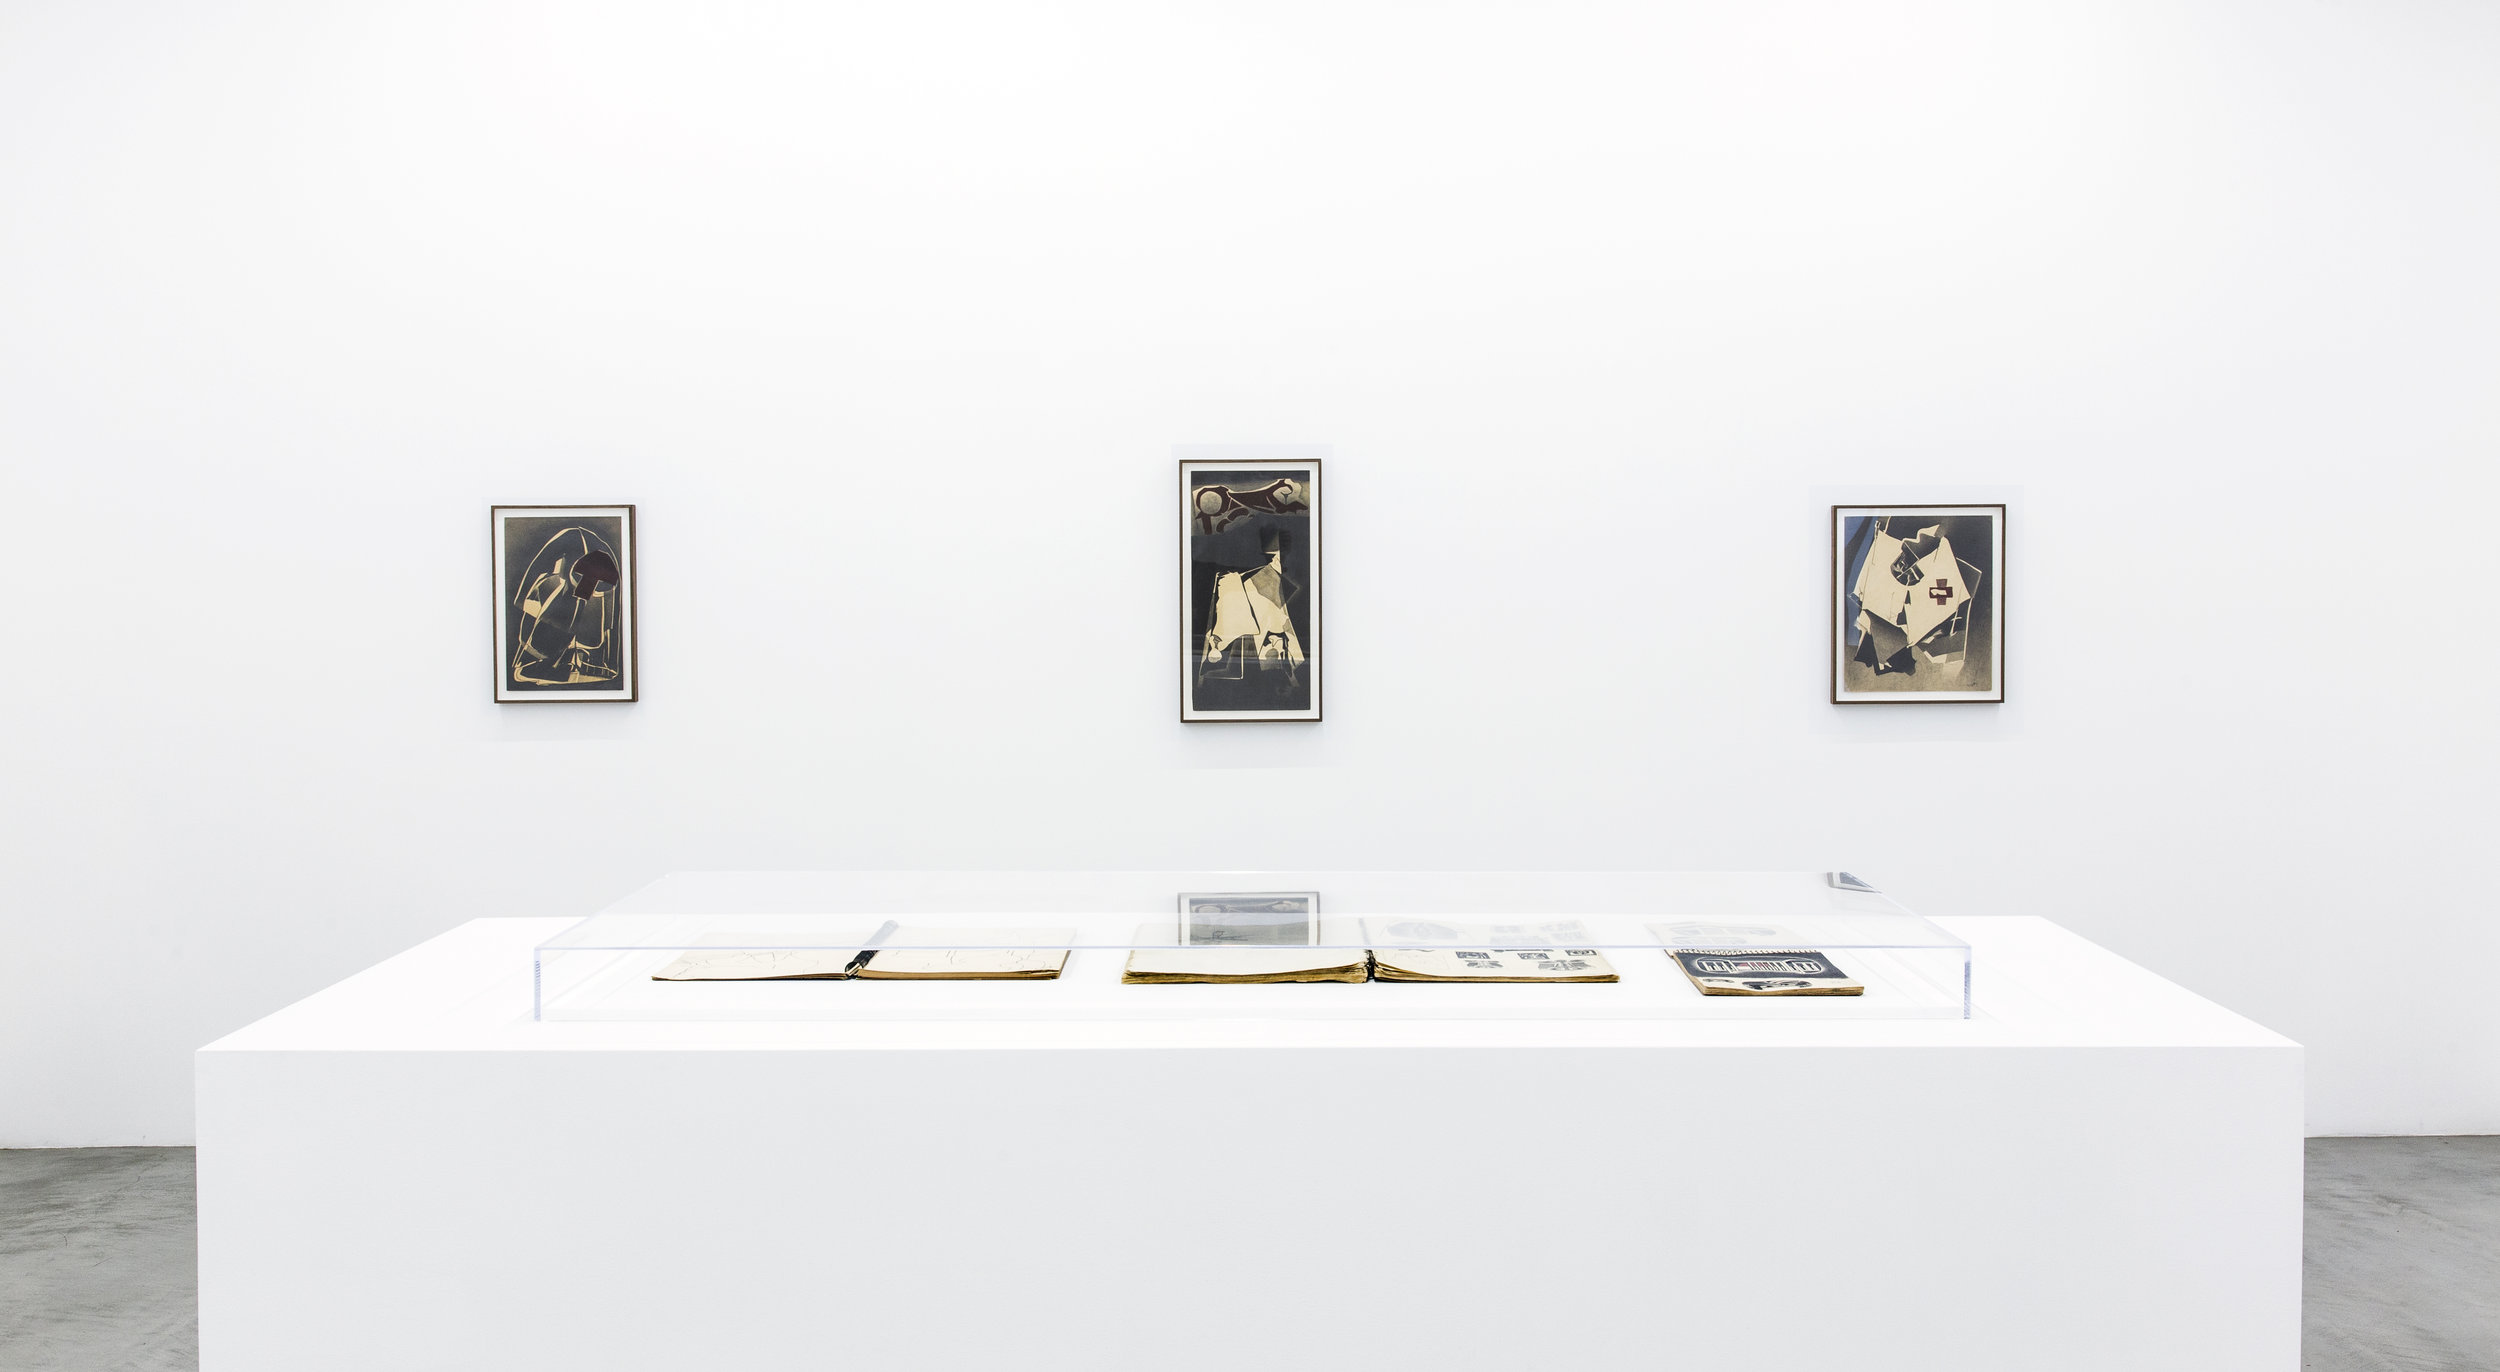 Installation view of Deborah Remington's sketchbooks and early works on paper.